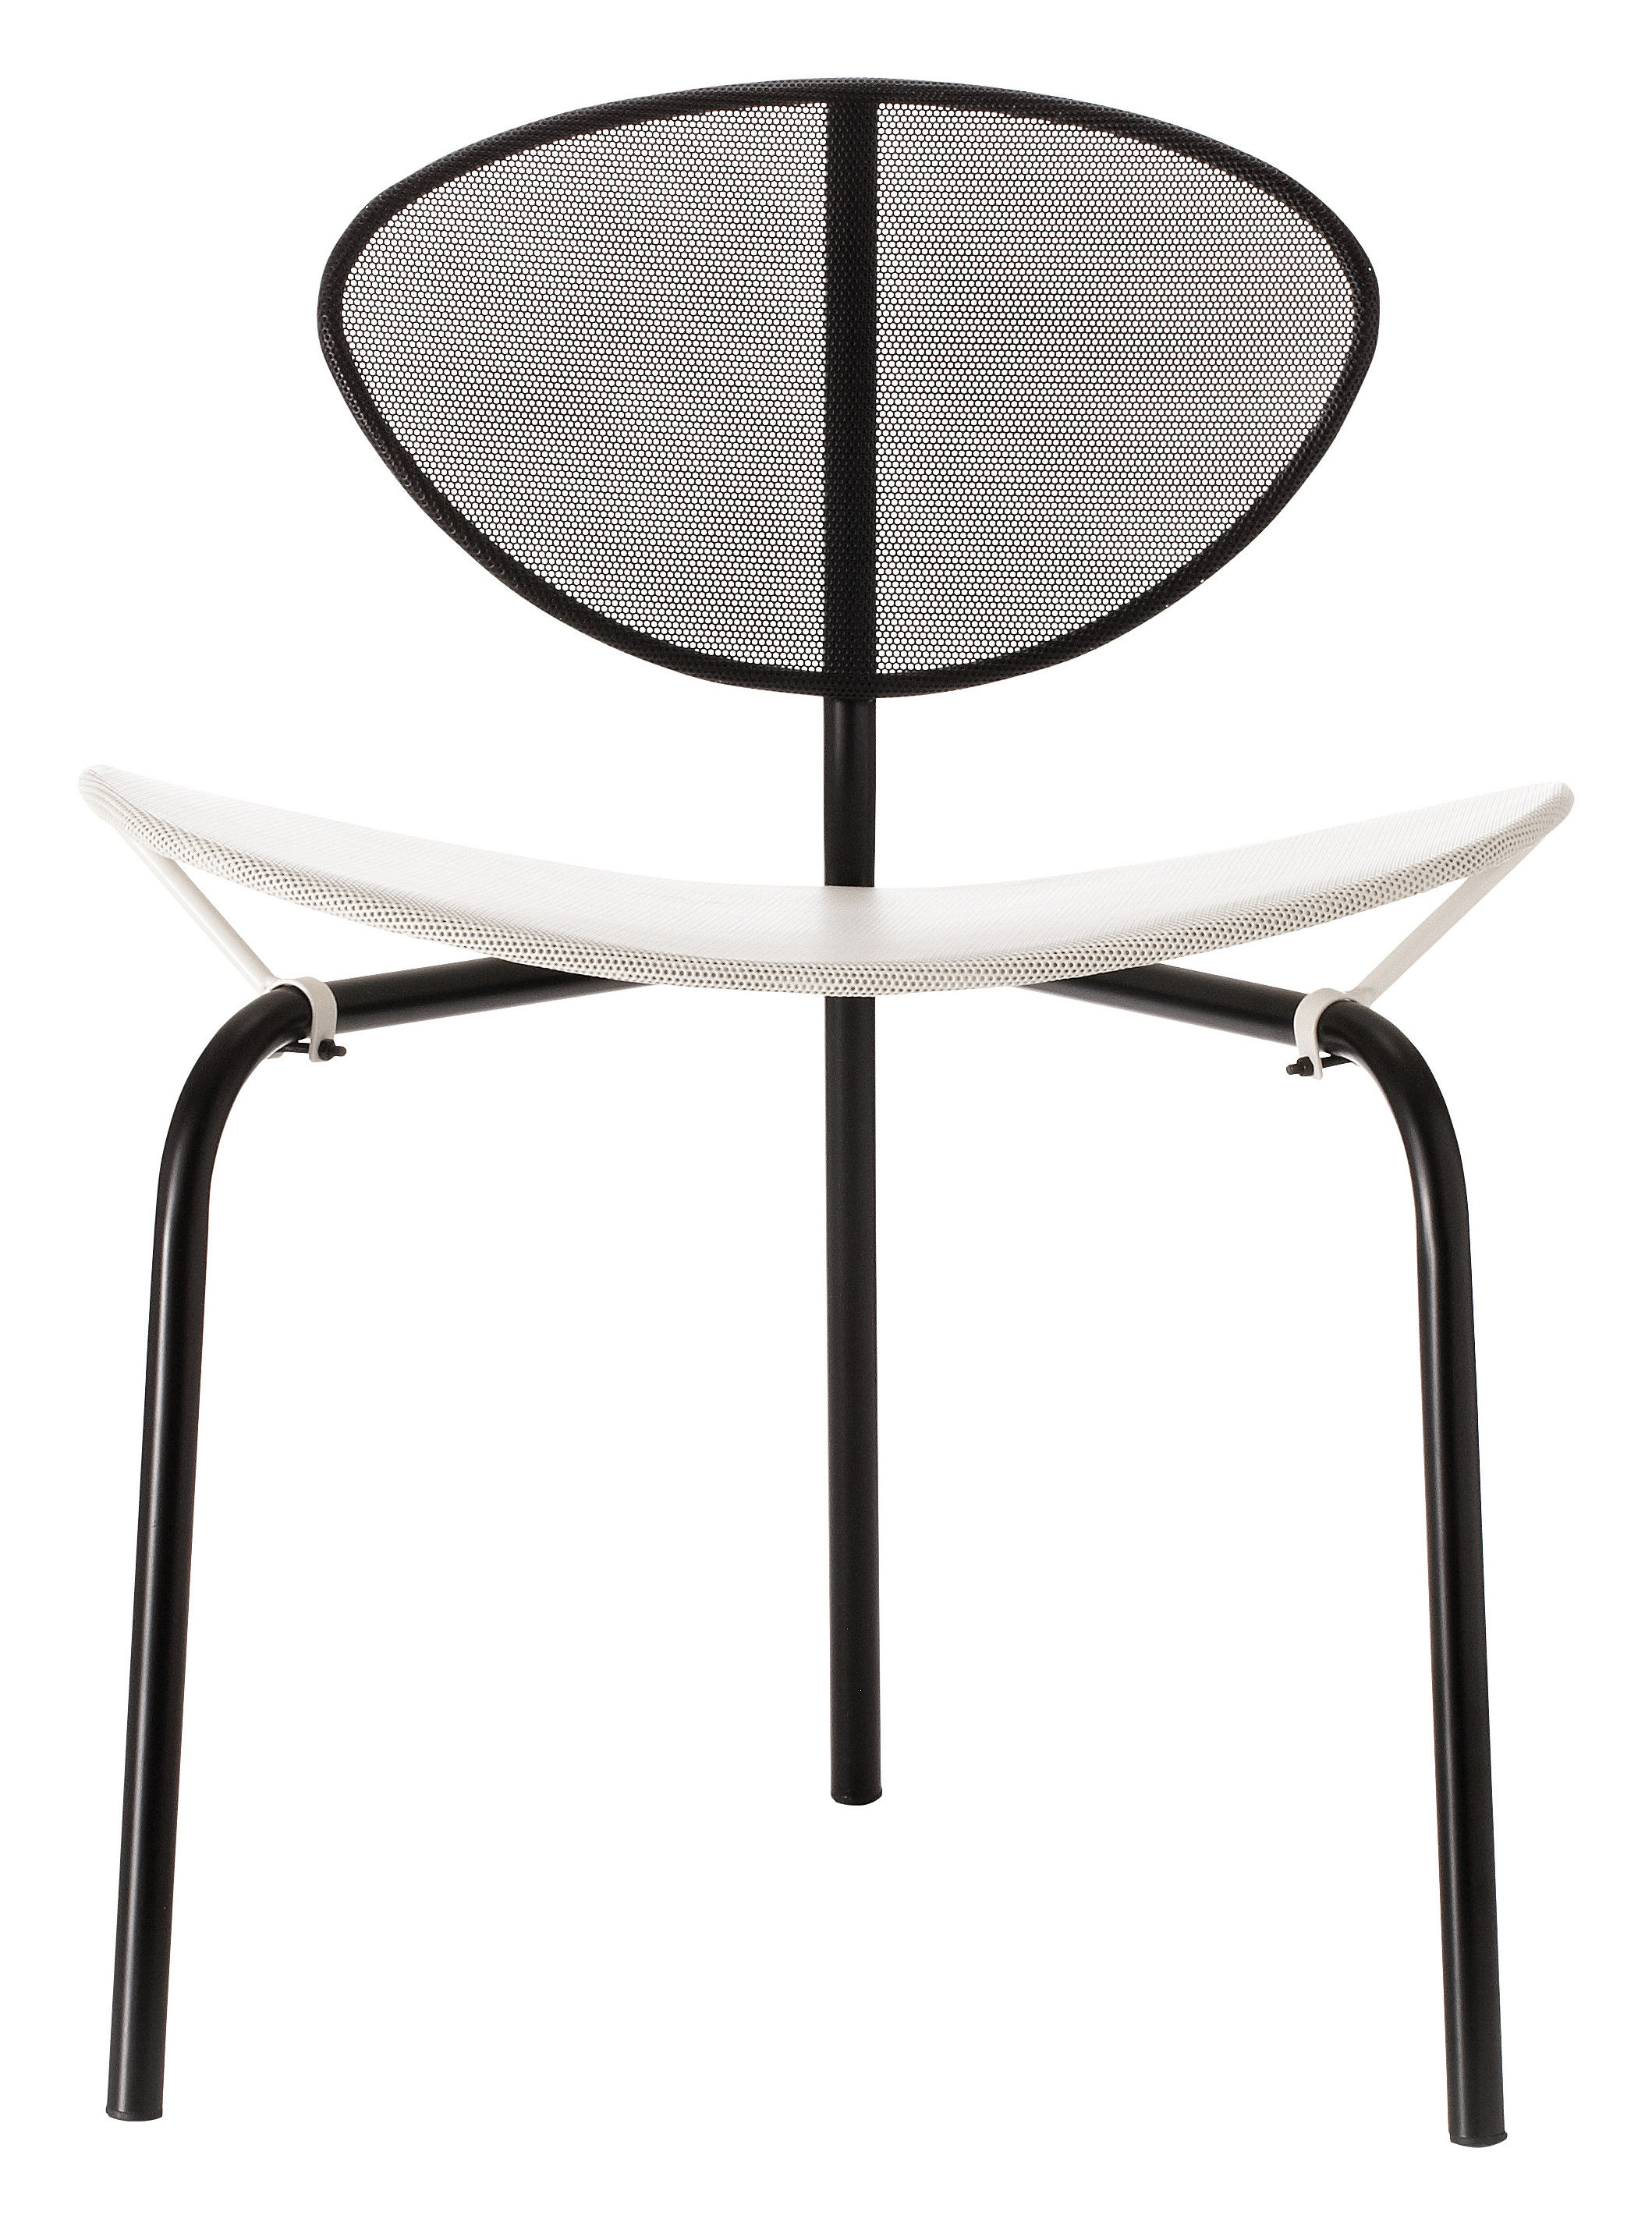 Furniture - Chairs - Nagasaki Chair - Reissue 1954 by Gubi - White / Black structure - Stainless steel